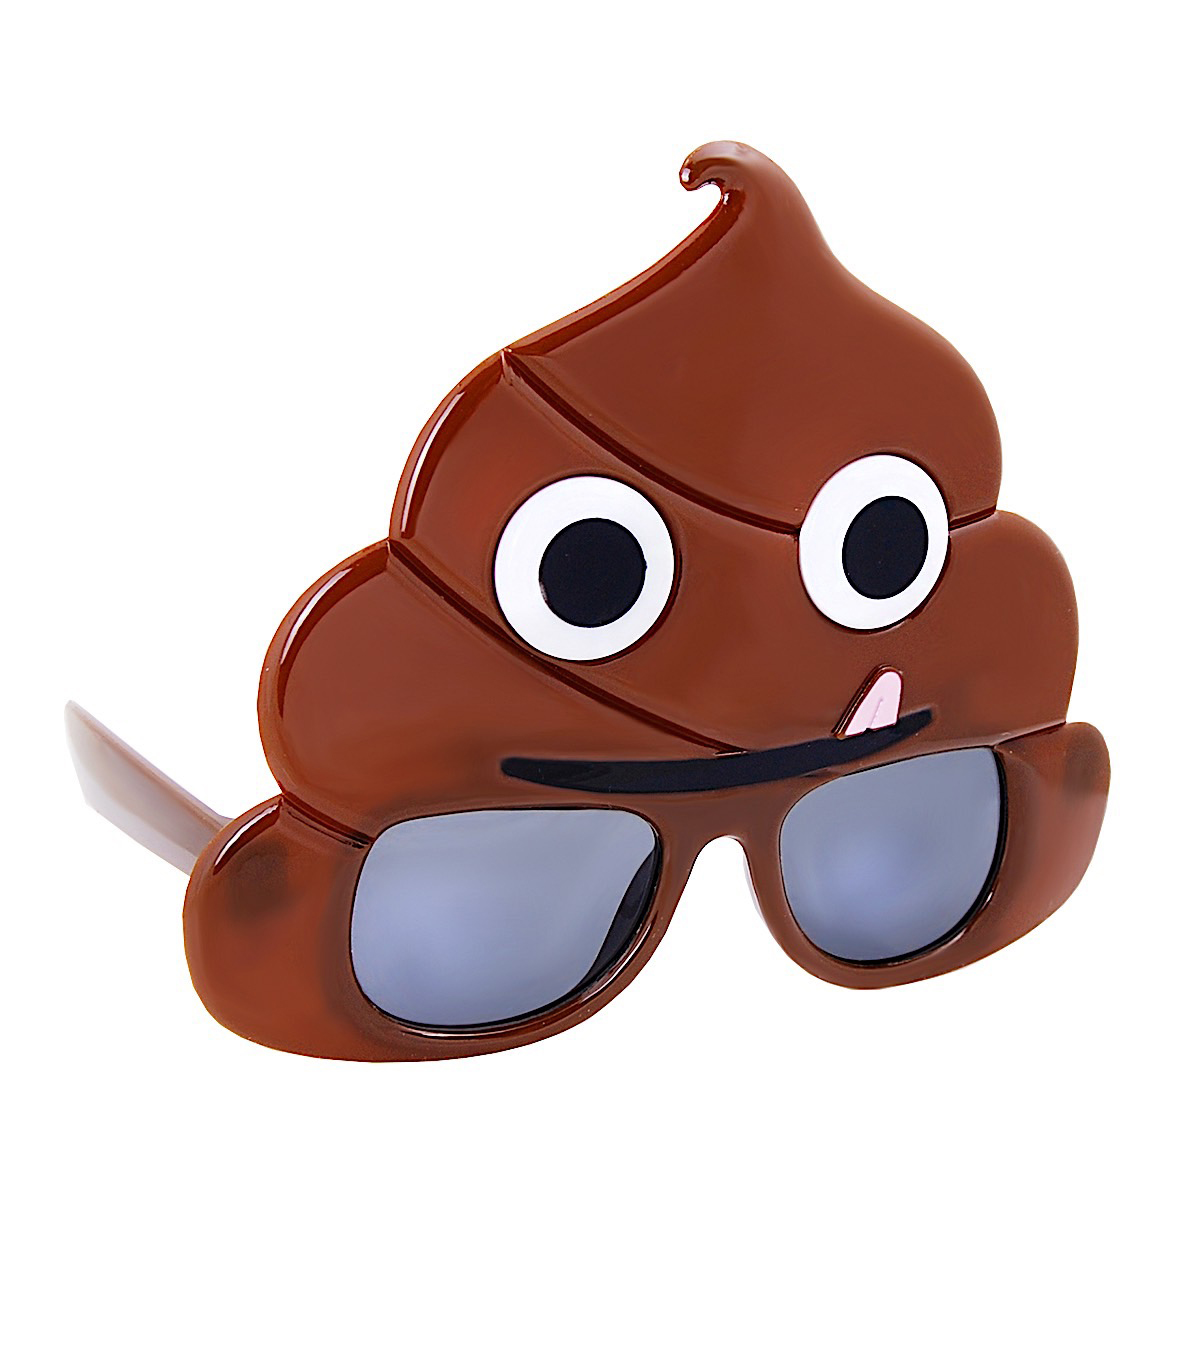 Sun-Staches Sunglasses-Emotion Poo